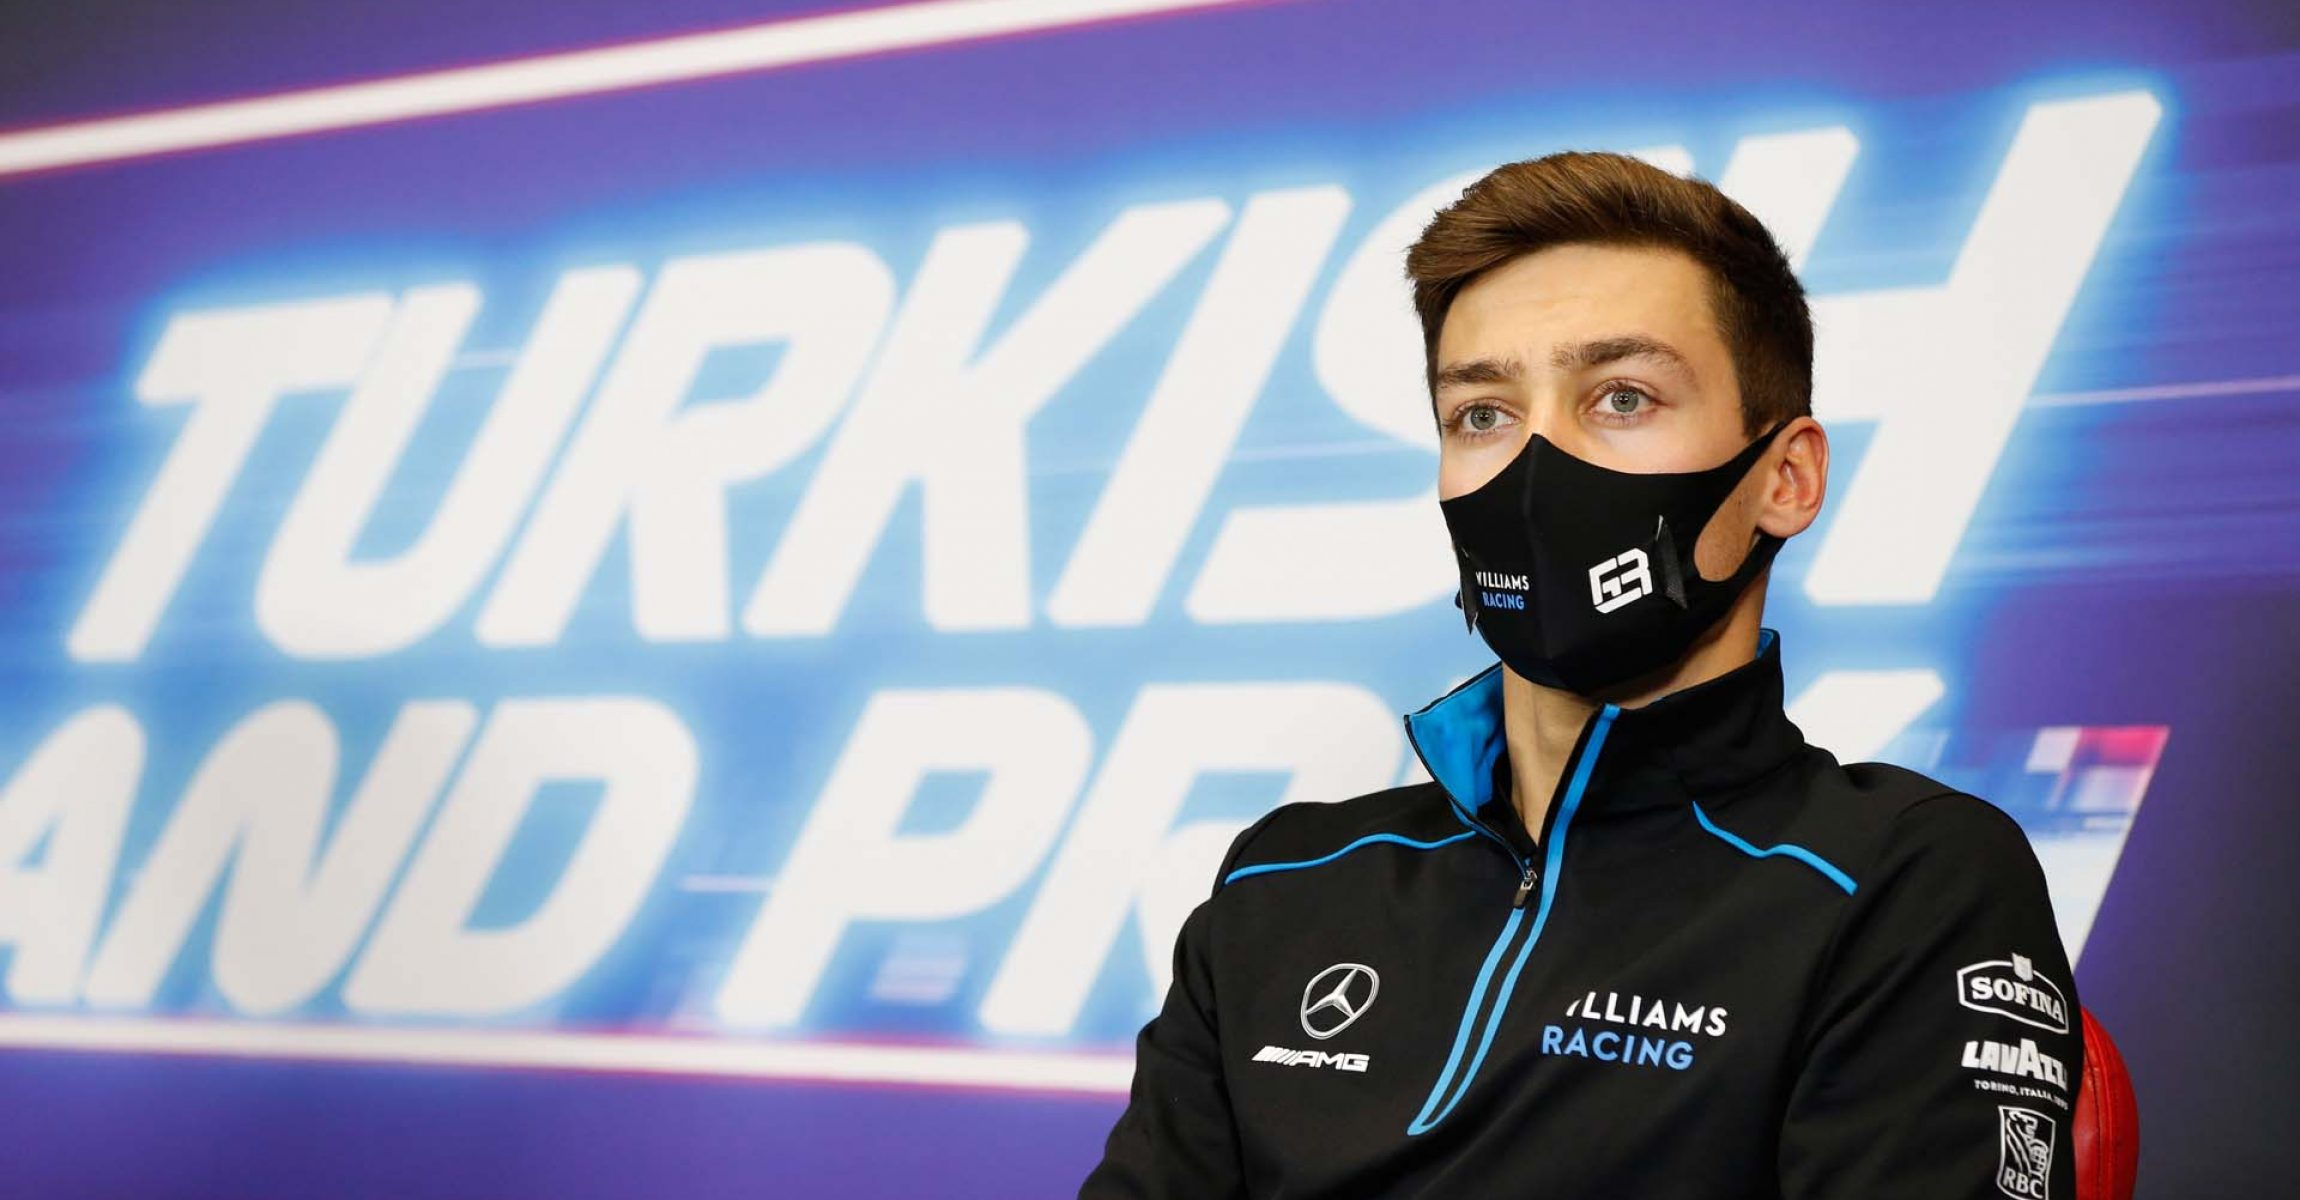 George Russell (GBR) Williams Racing in the FIA Press Conference. Turkish Grand Prix, Thursday 12th November 2020. Istanbul, Turkey. FIA Pool Image for Editorial Use Only